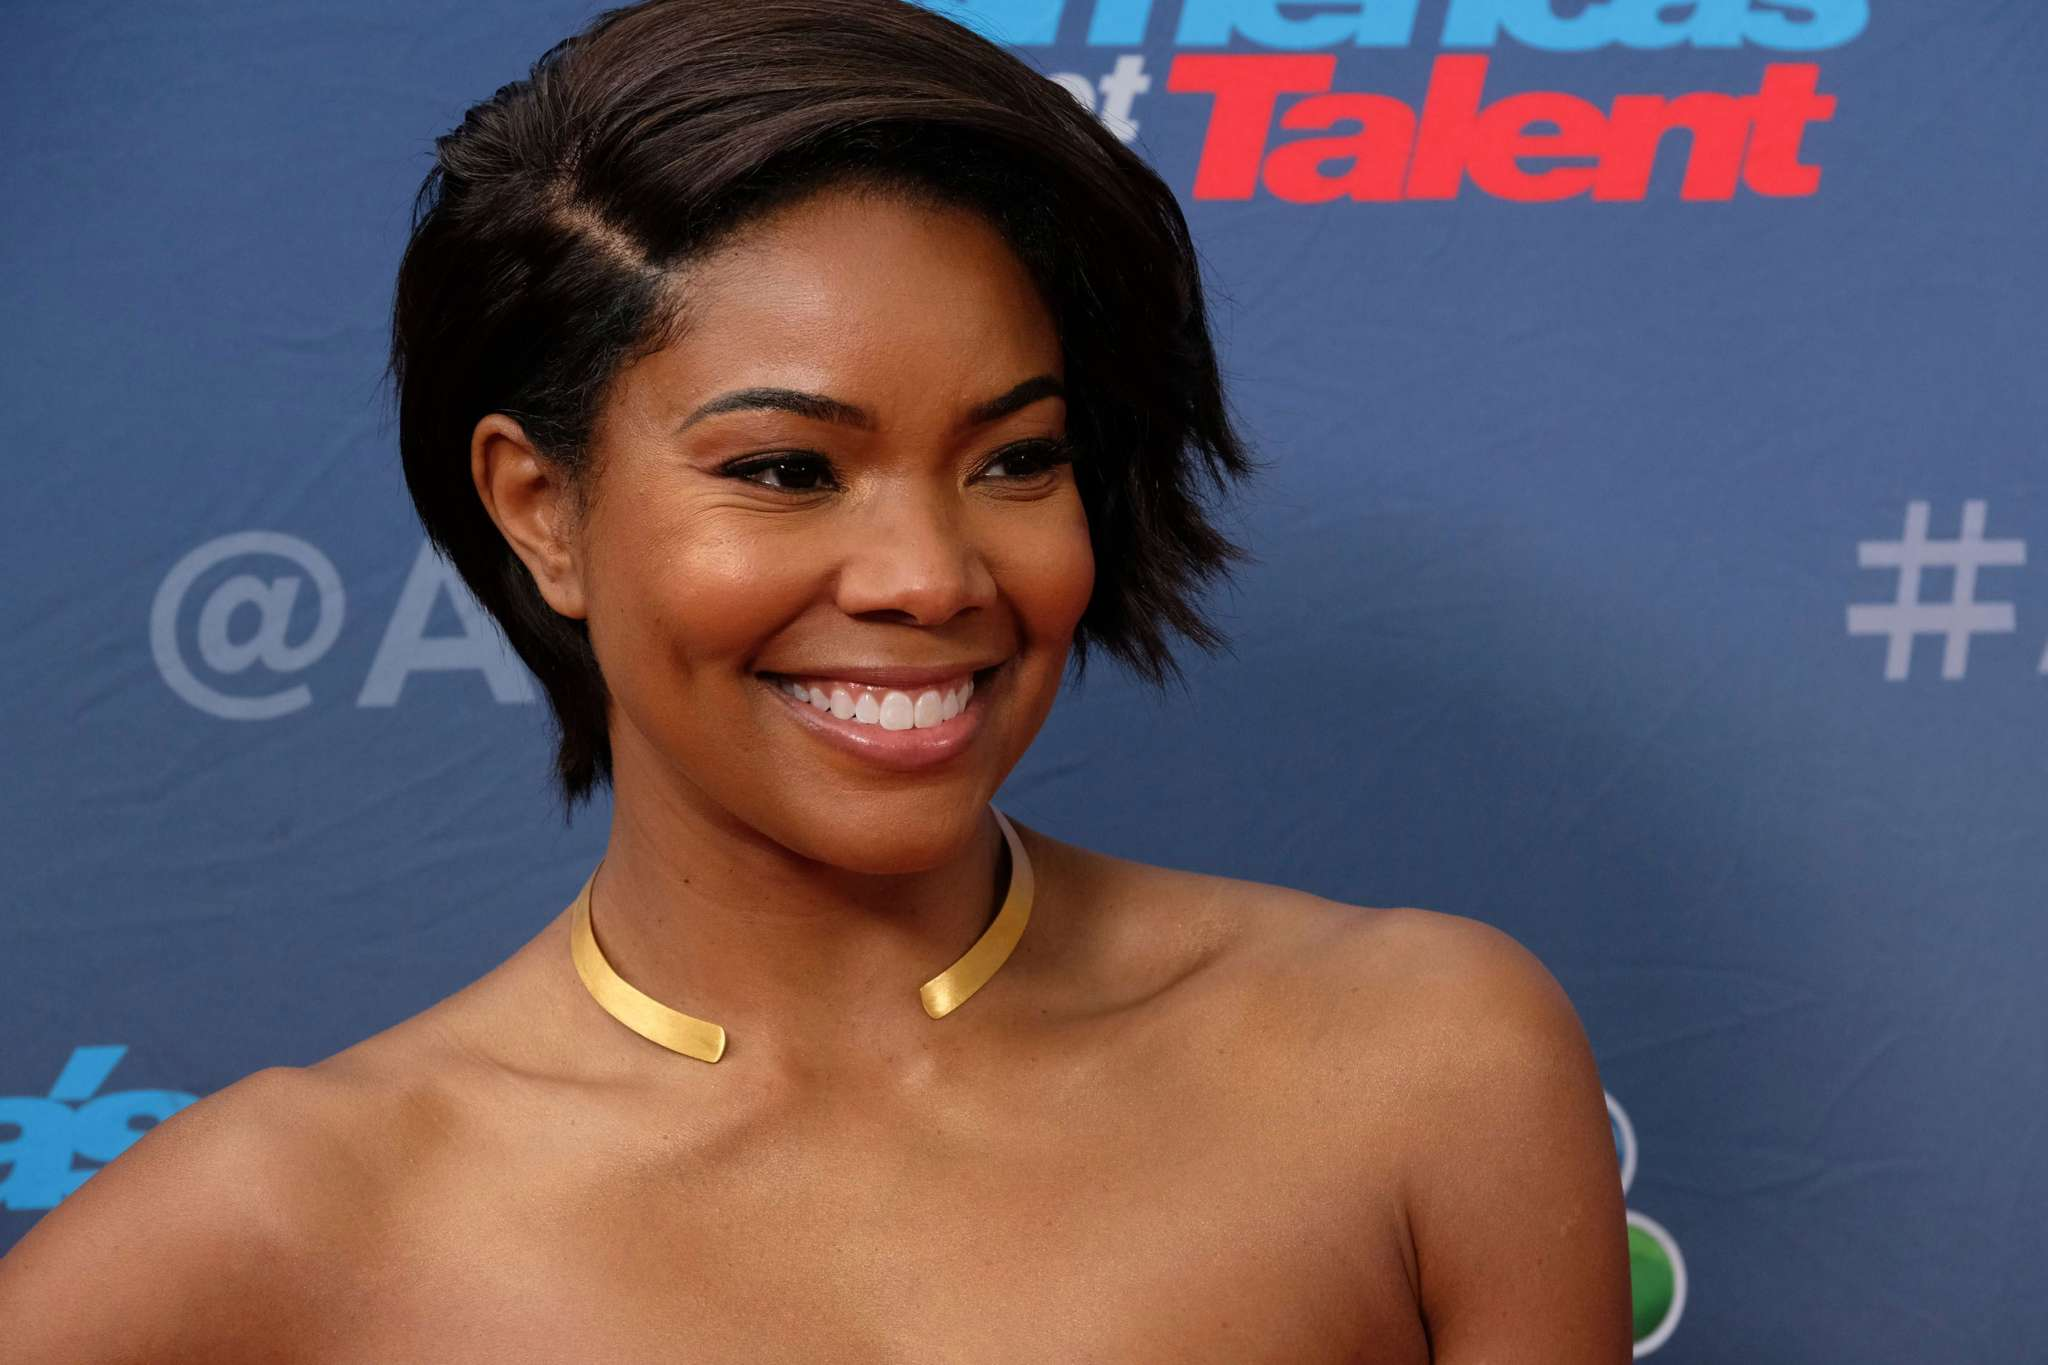 gabrielle-union-praises-a-very-special-movie-ahead-of-the-elections